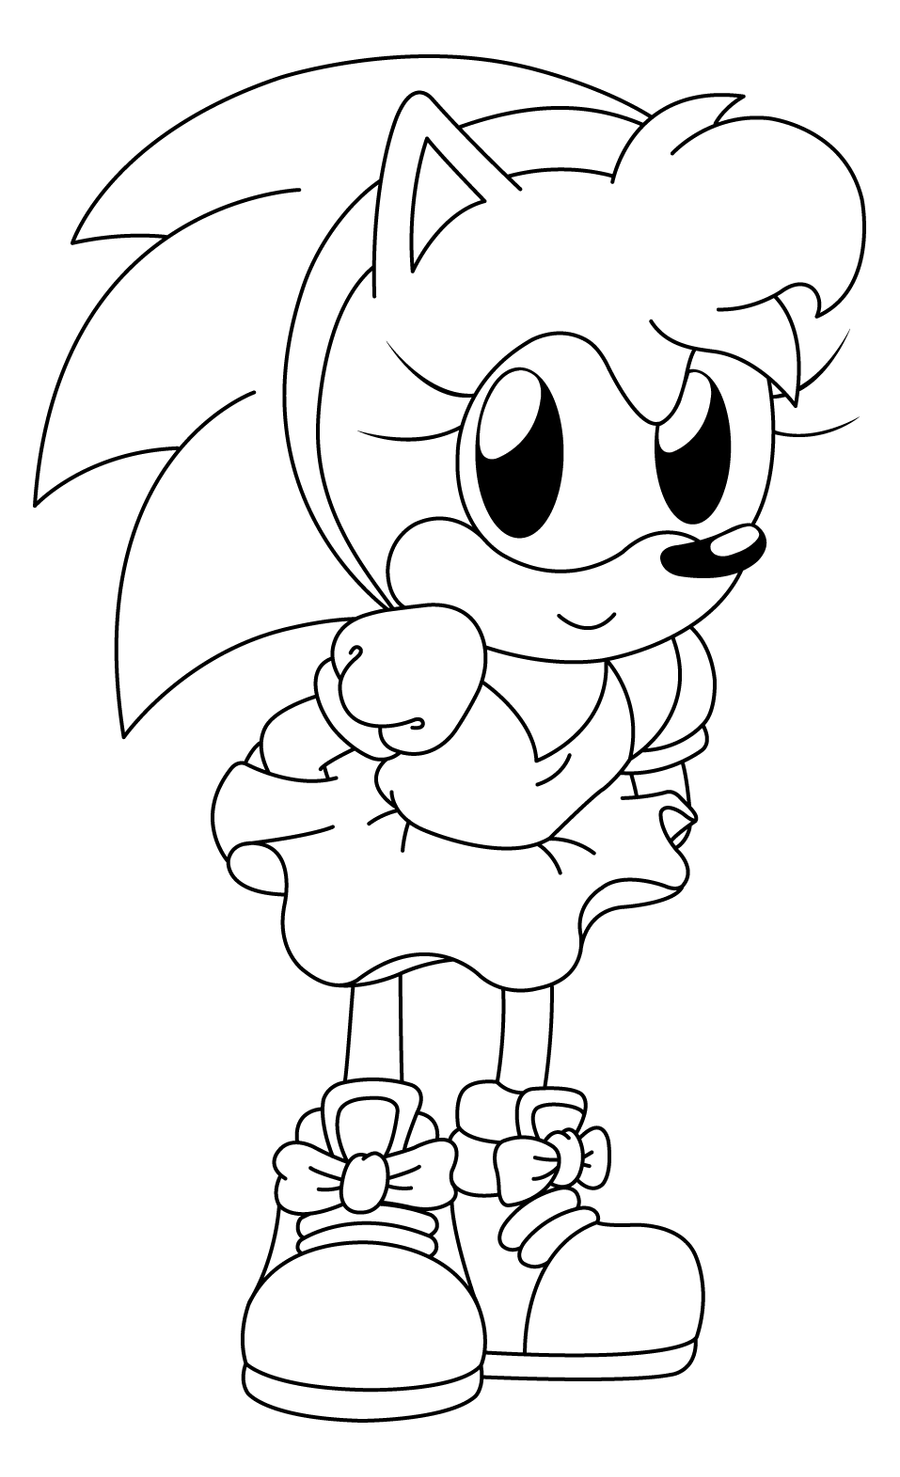 sonic and amy rose coloring pages | Classic Amy by sonictopfan on DeviantArt